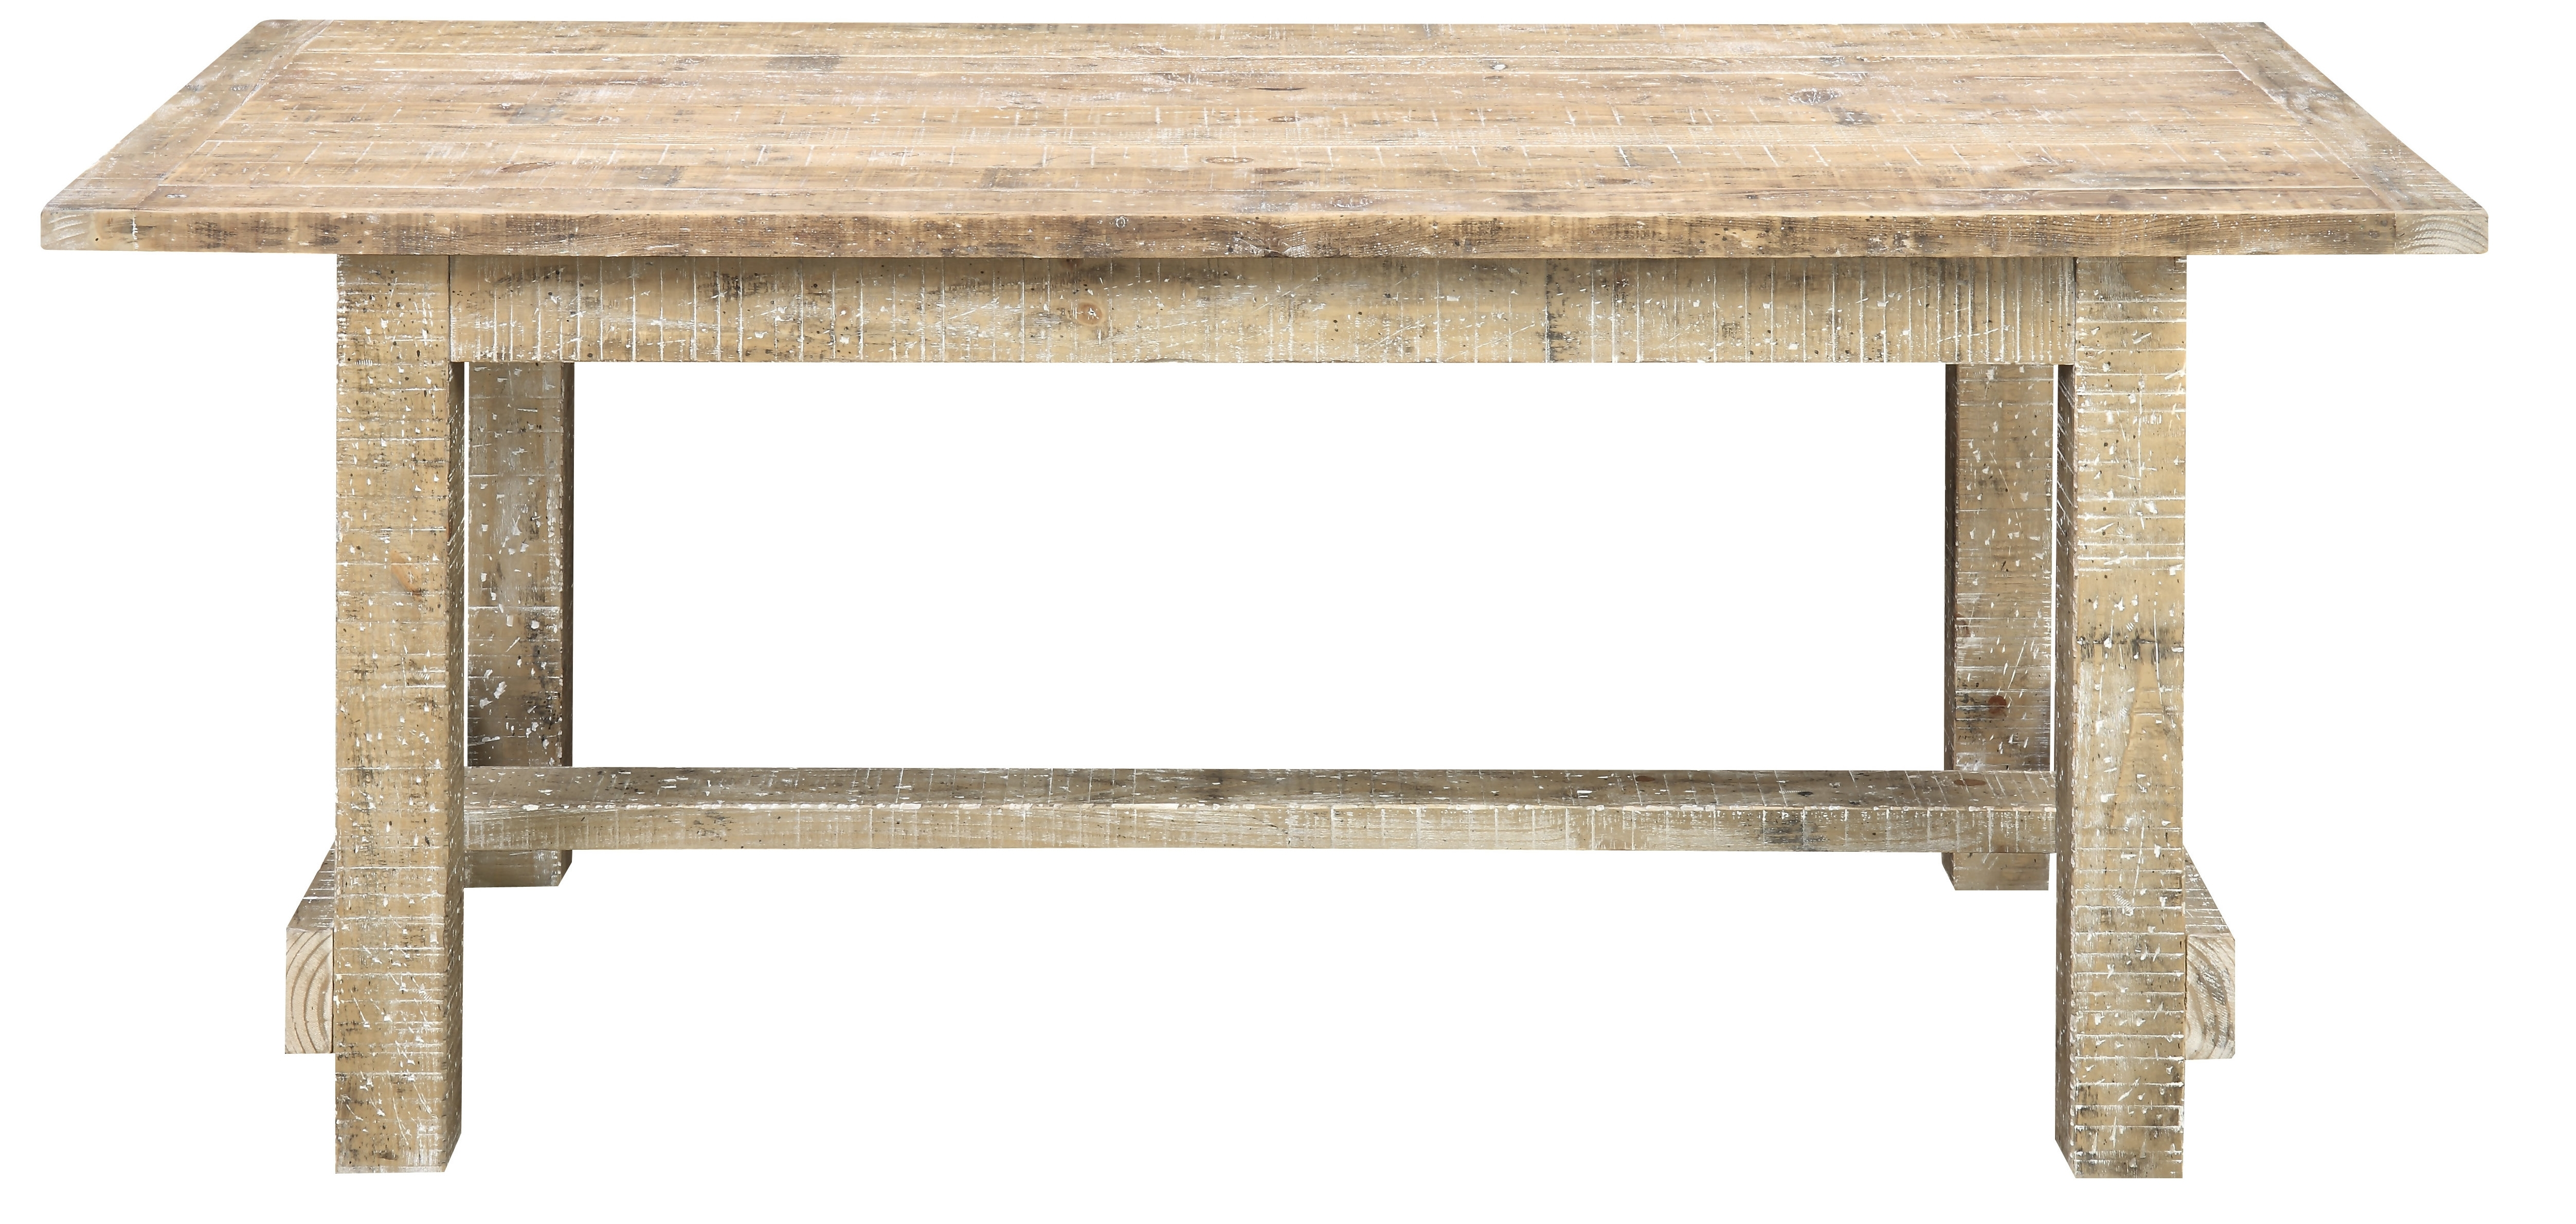 Lark Manor Bedard Gathering Dining Table & Reviews | Wayfair in Moraga Live Edge 8 Door Sideboards (Image 20 of 30)